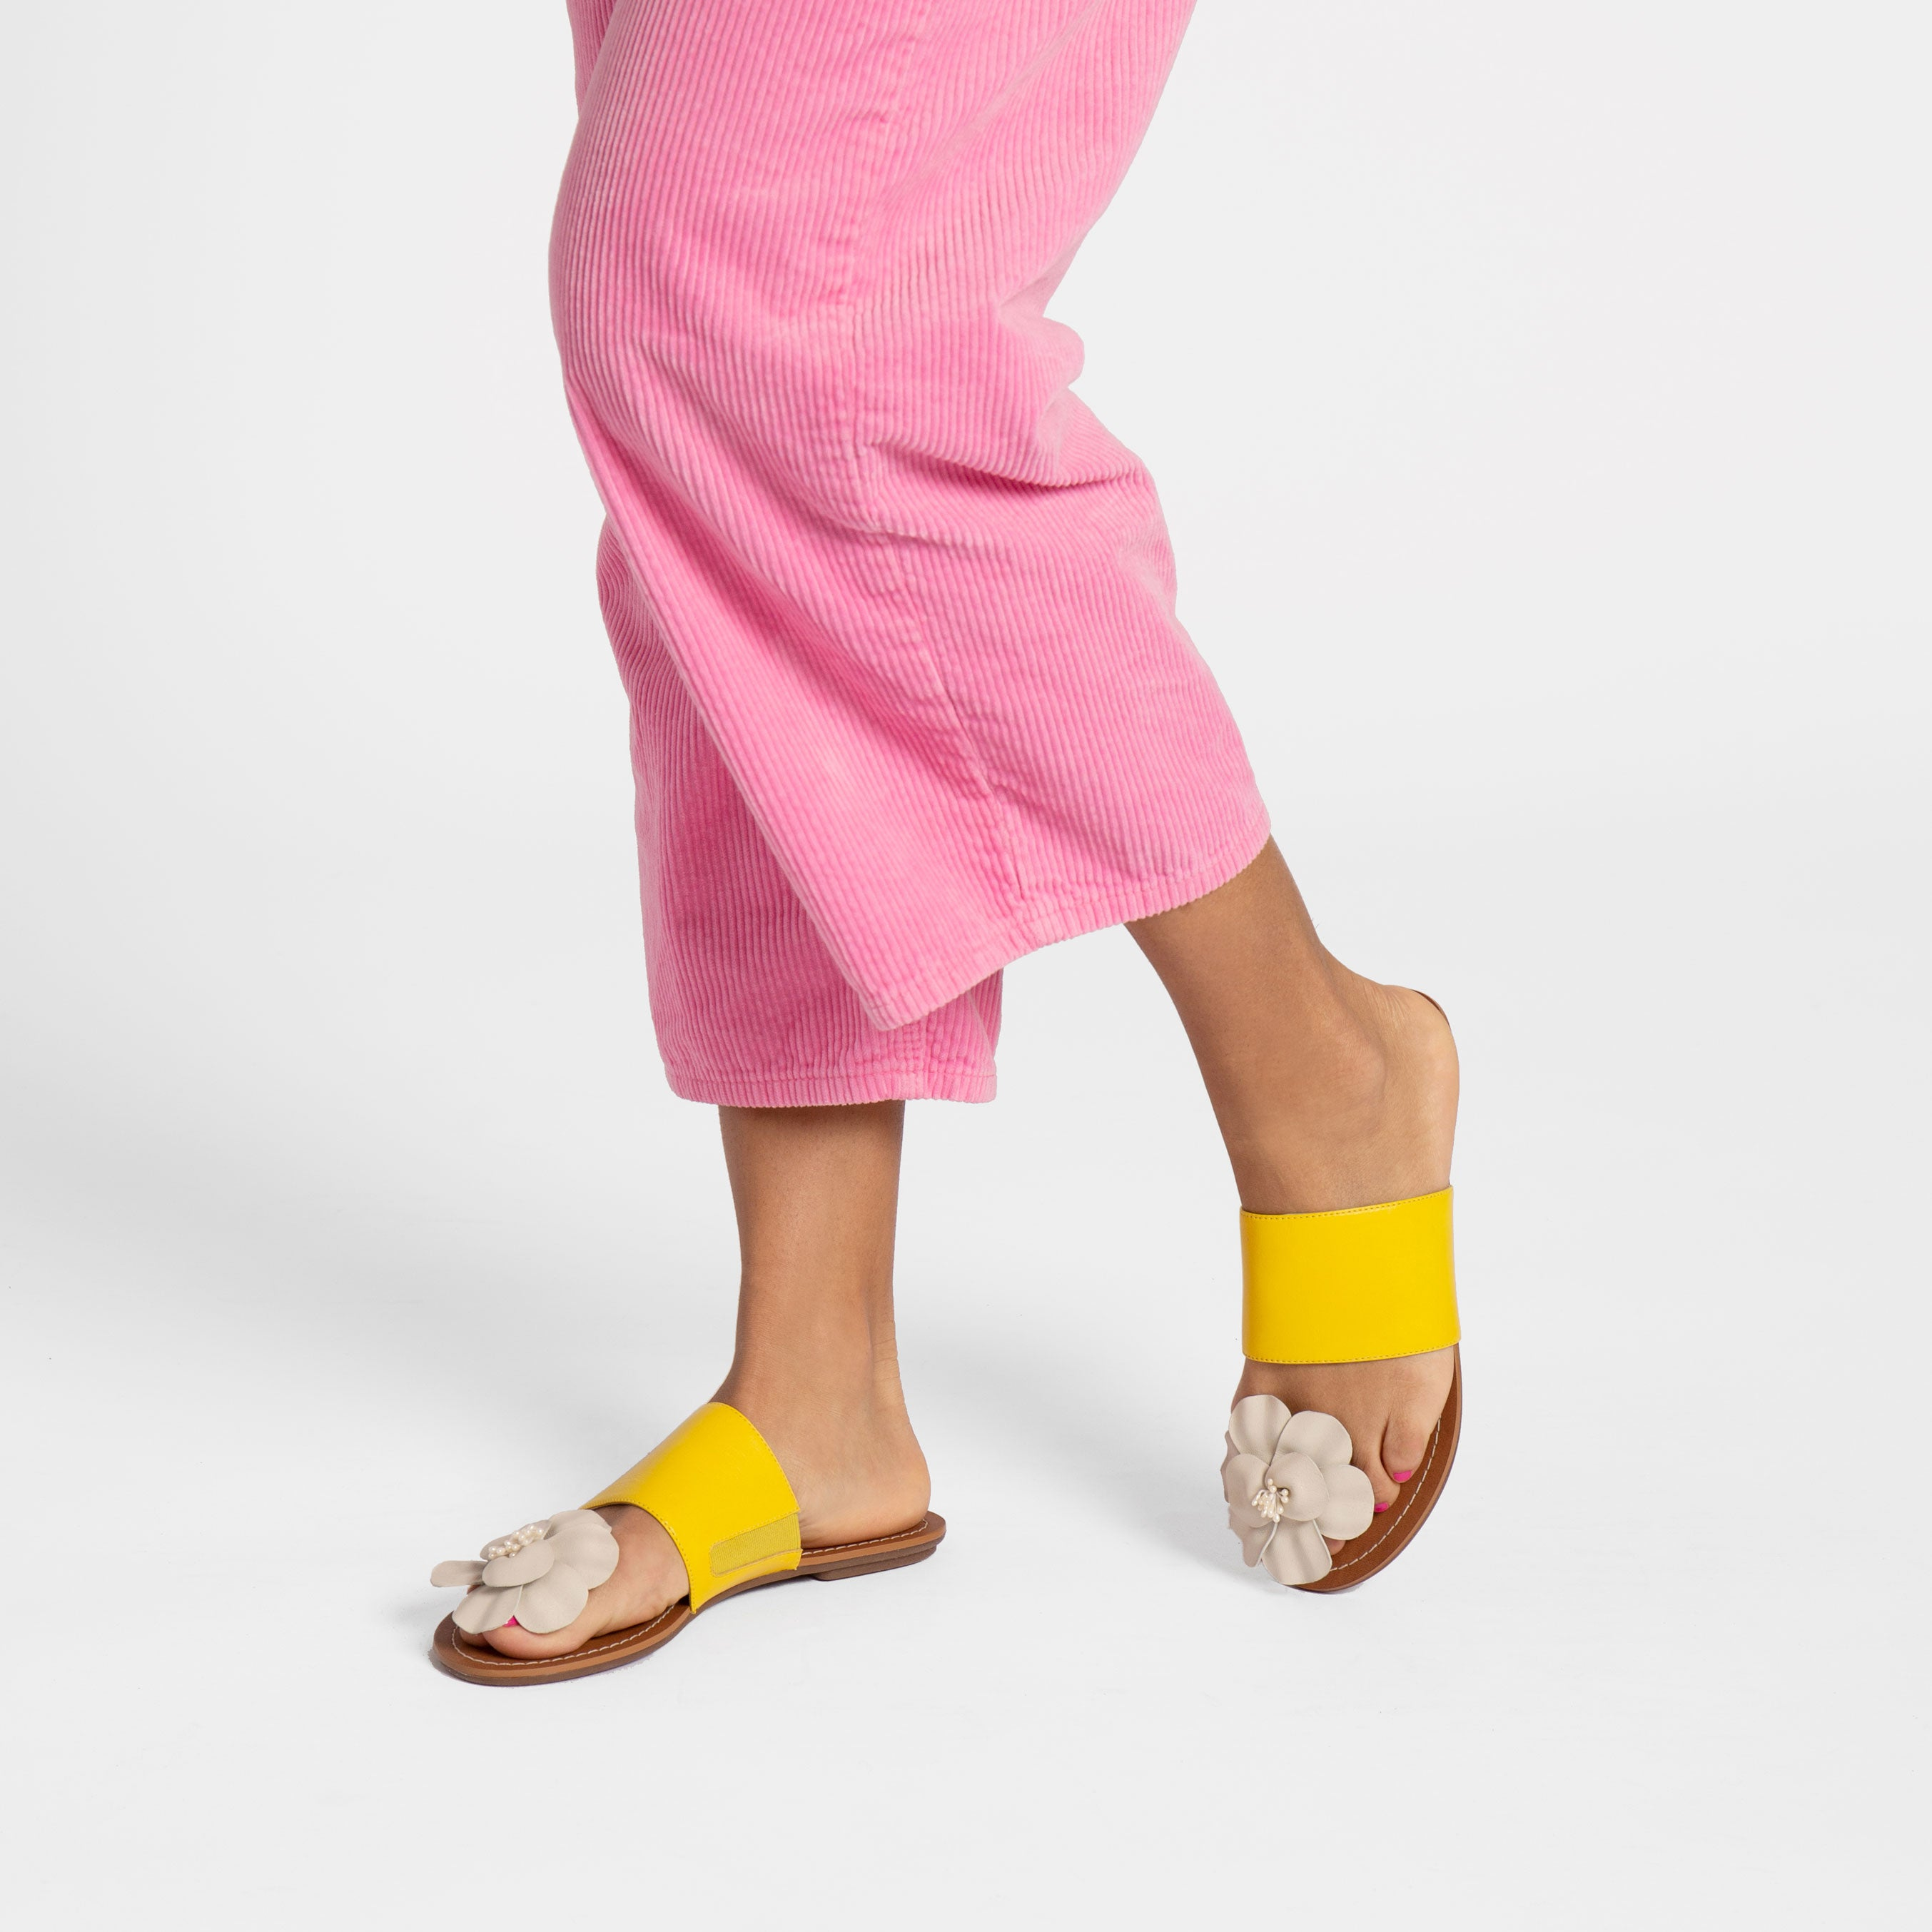 Clementine Flower Sandal Yellow